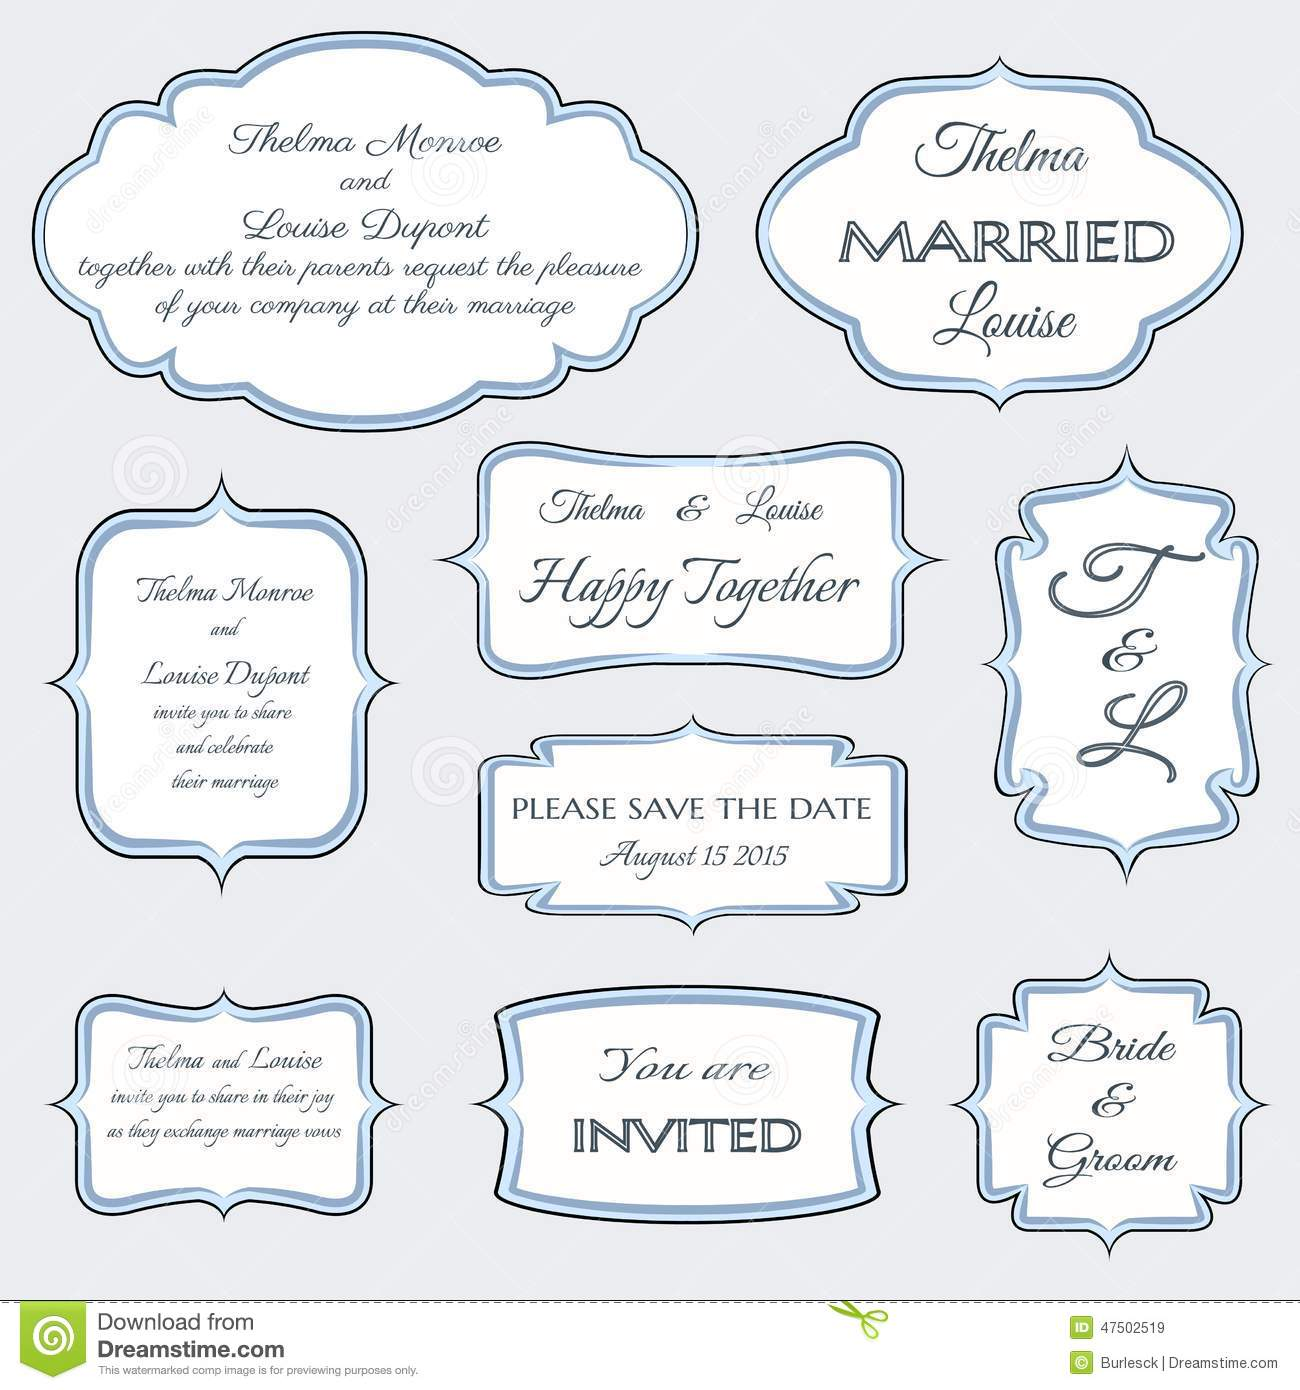 Frames for wedding invitation cards stock vector illustration of frames for wedding invitation cards stopboris Image collections